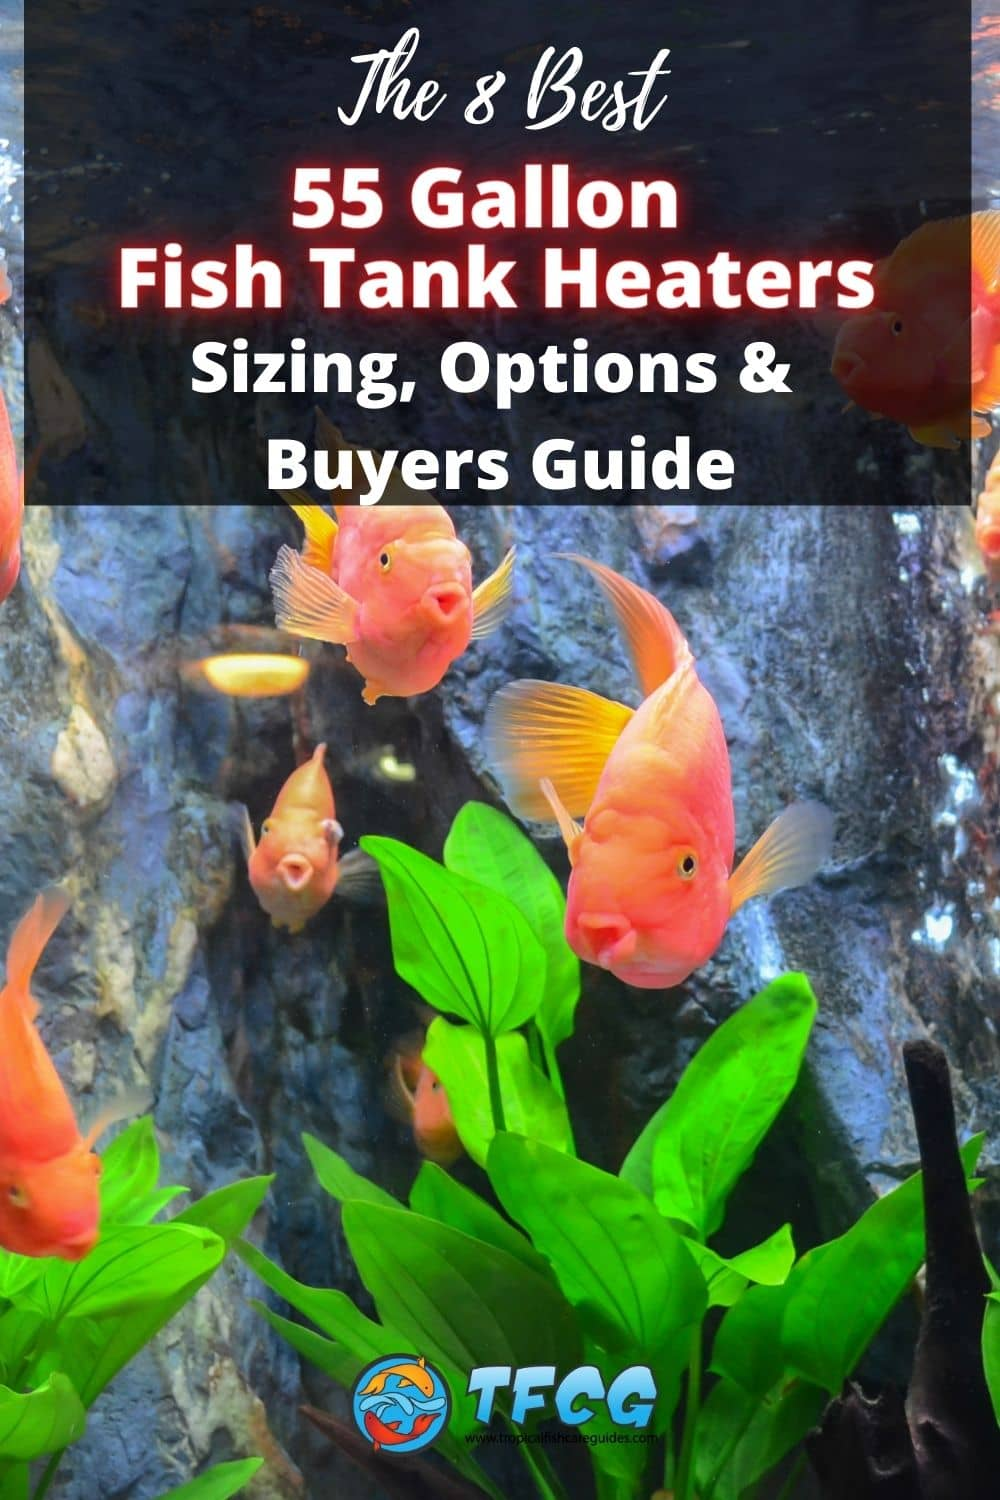 The Best 55 Gallon Fish Tank Heaters [Reviewed]